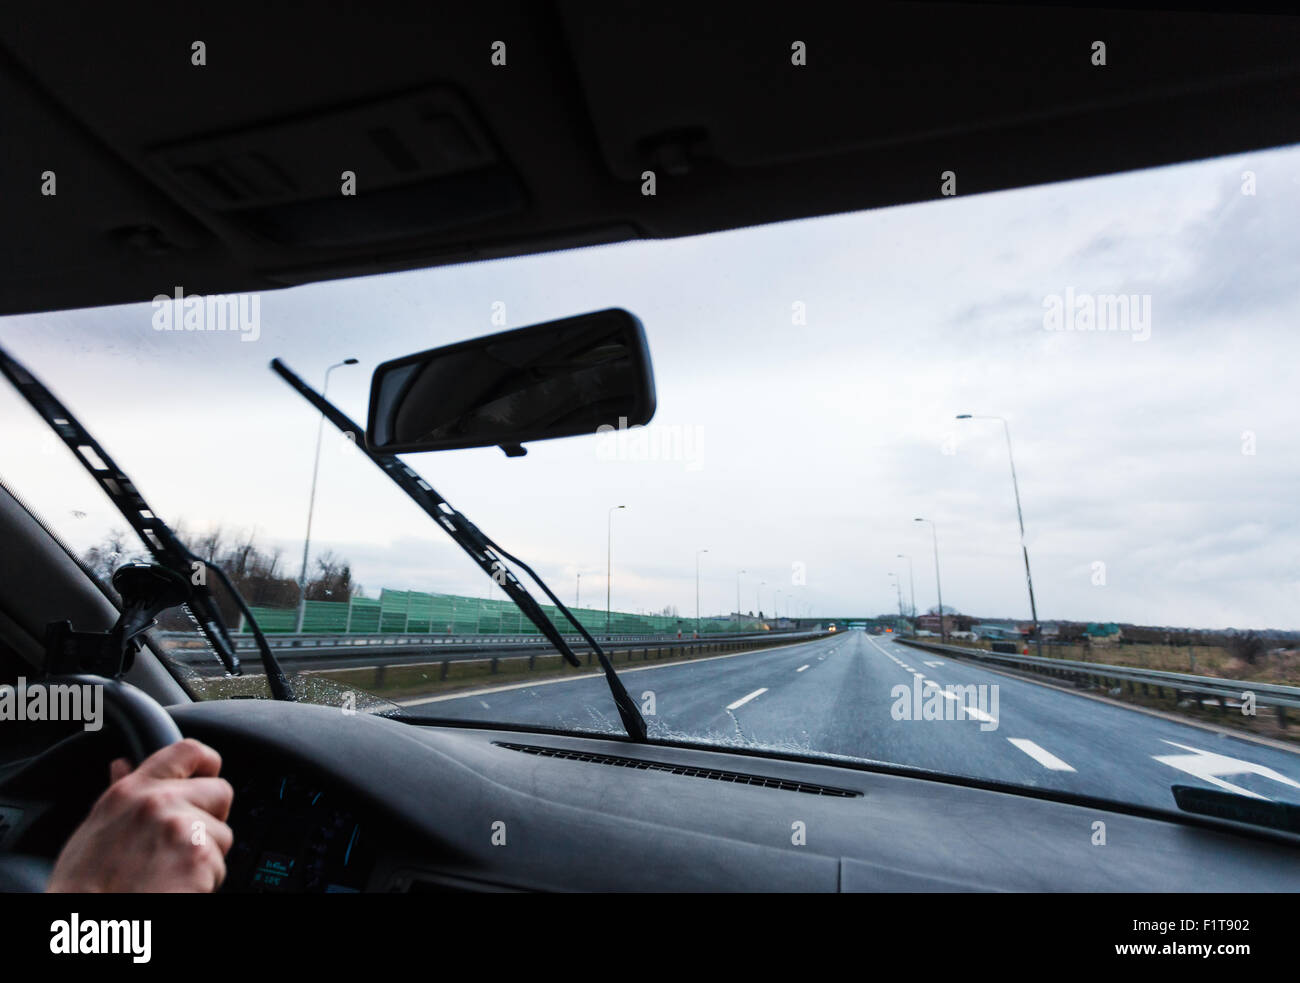 Bad weather conditions driving a car - Stock Image